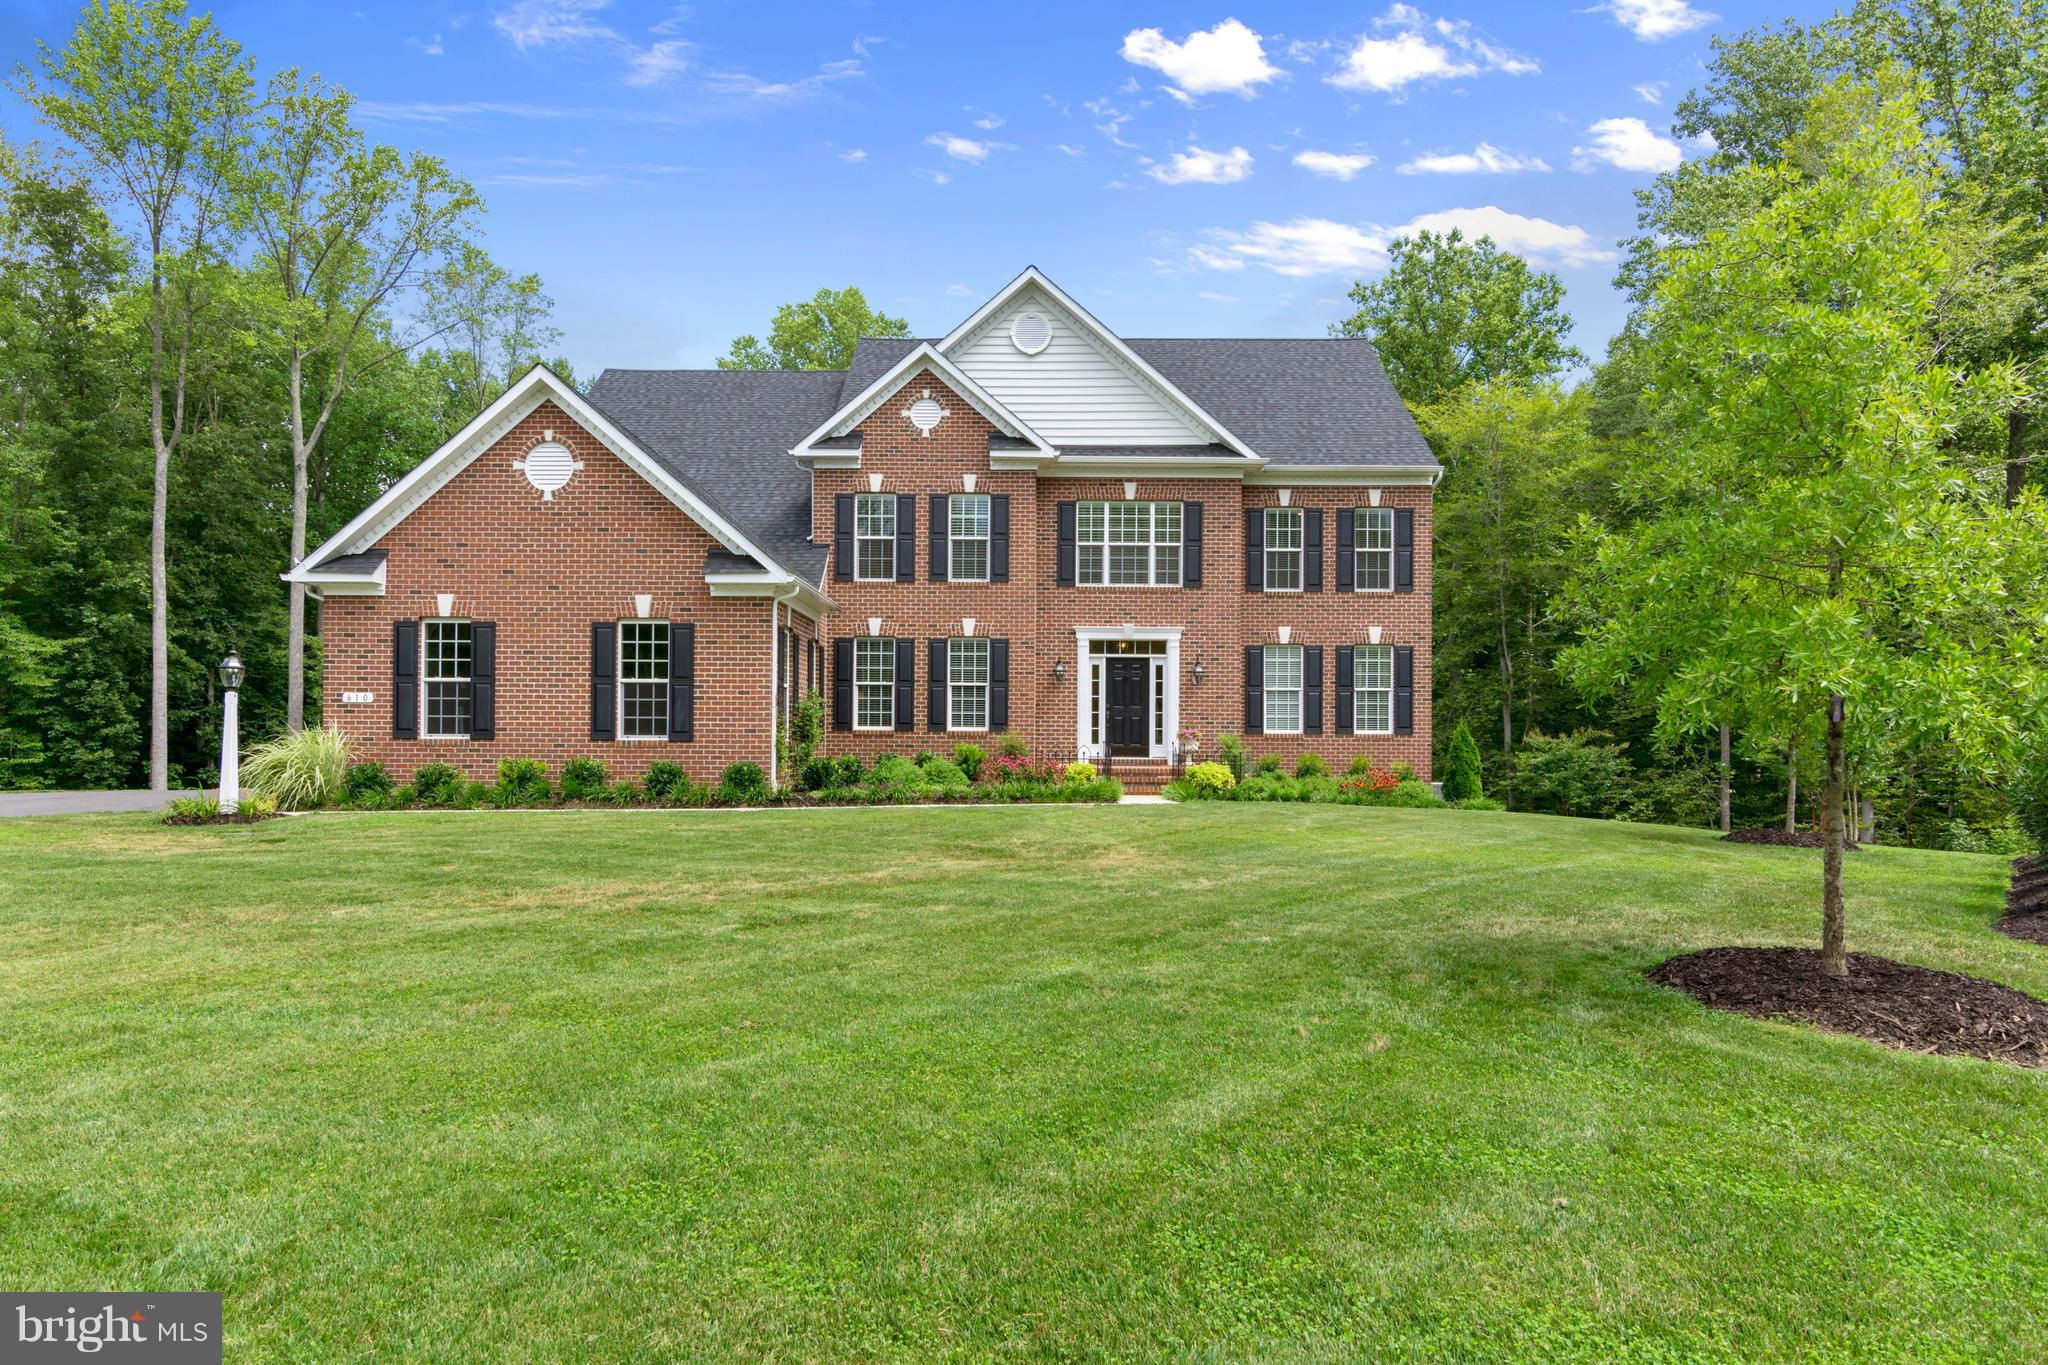 610 CHURCHILL CIRCLE, DAVIDSONVILLE, MD 21035